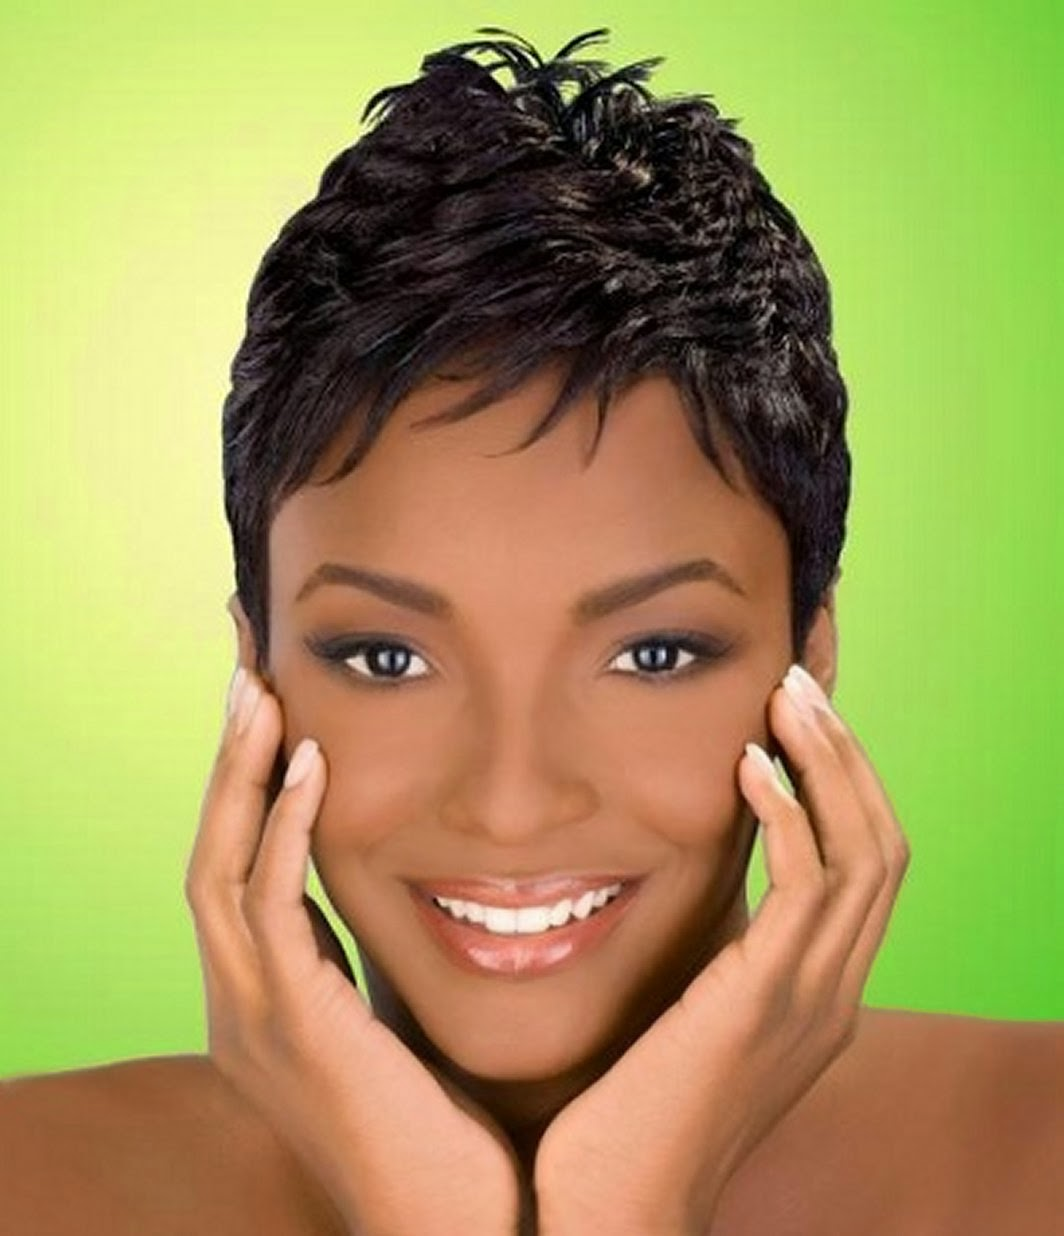 Remarkable Good Short Hairstyles For African American Women Short Hairstyles For Black Women Fulllsitofus